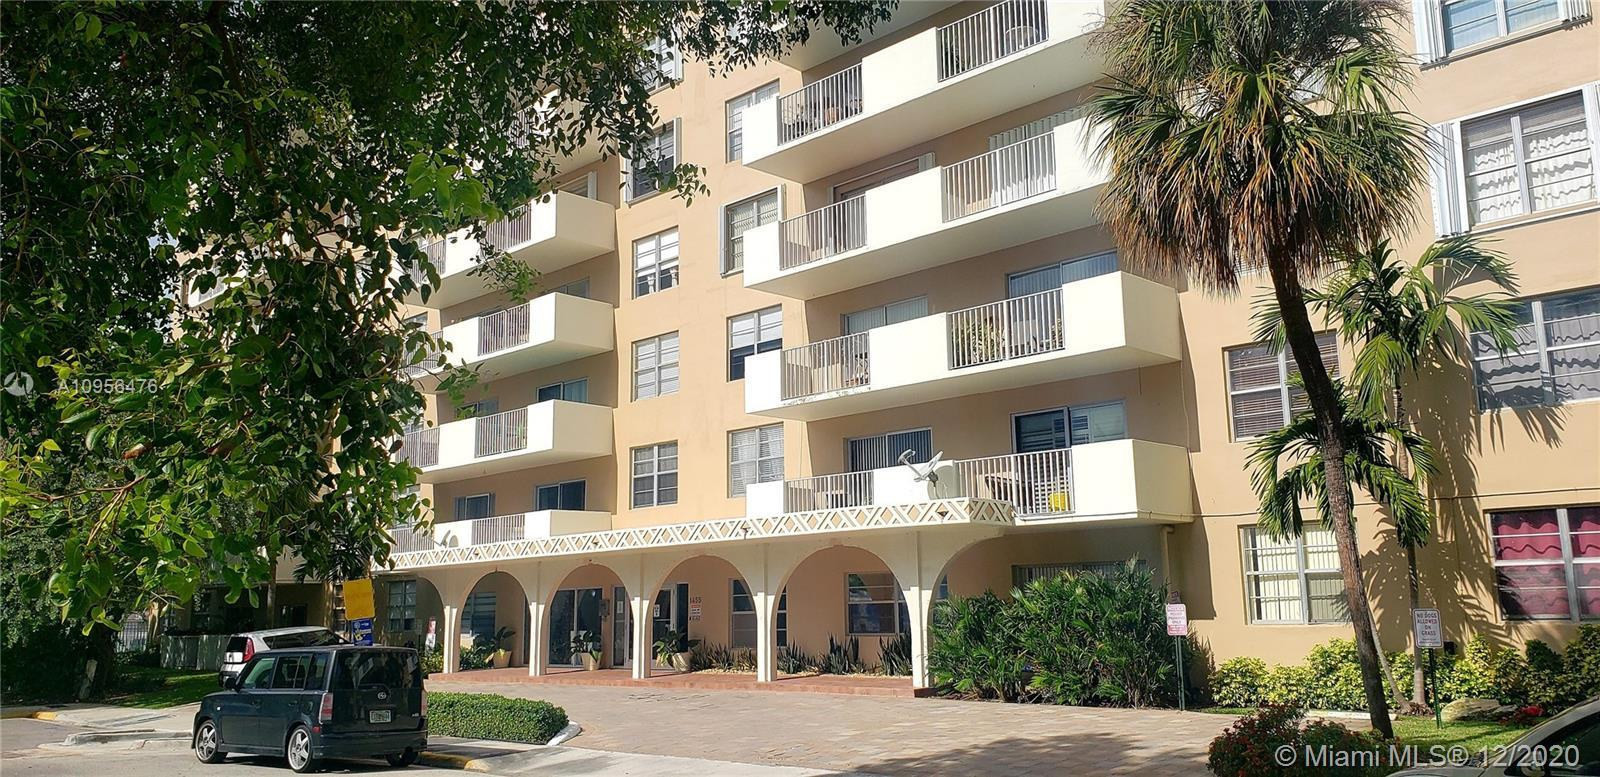 Just 4 miles away from Miami Beach this fully renovated unit with plenty of closets space, sits besi